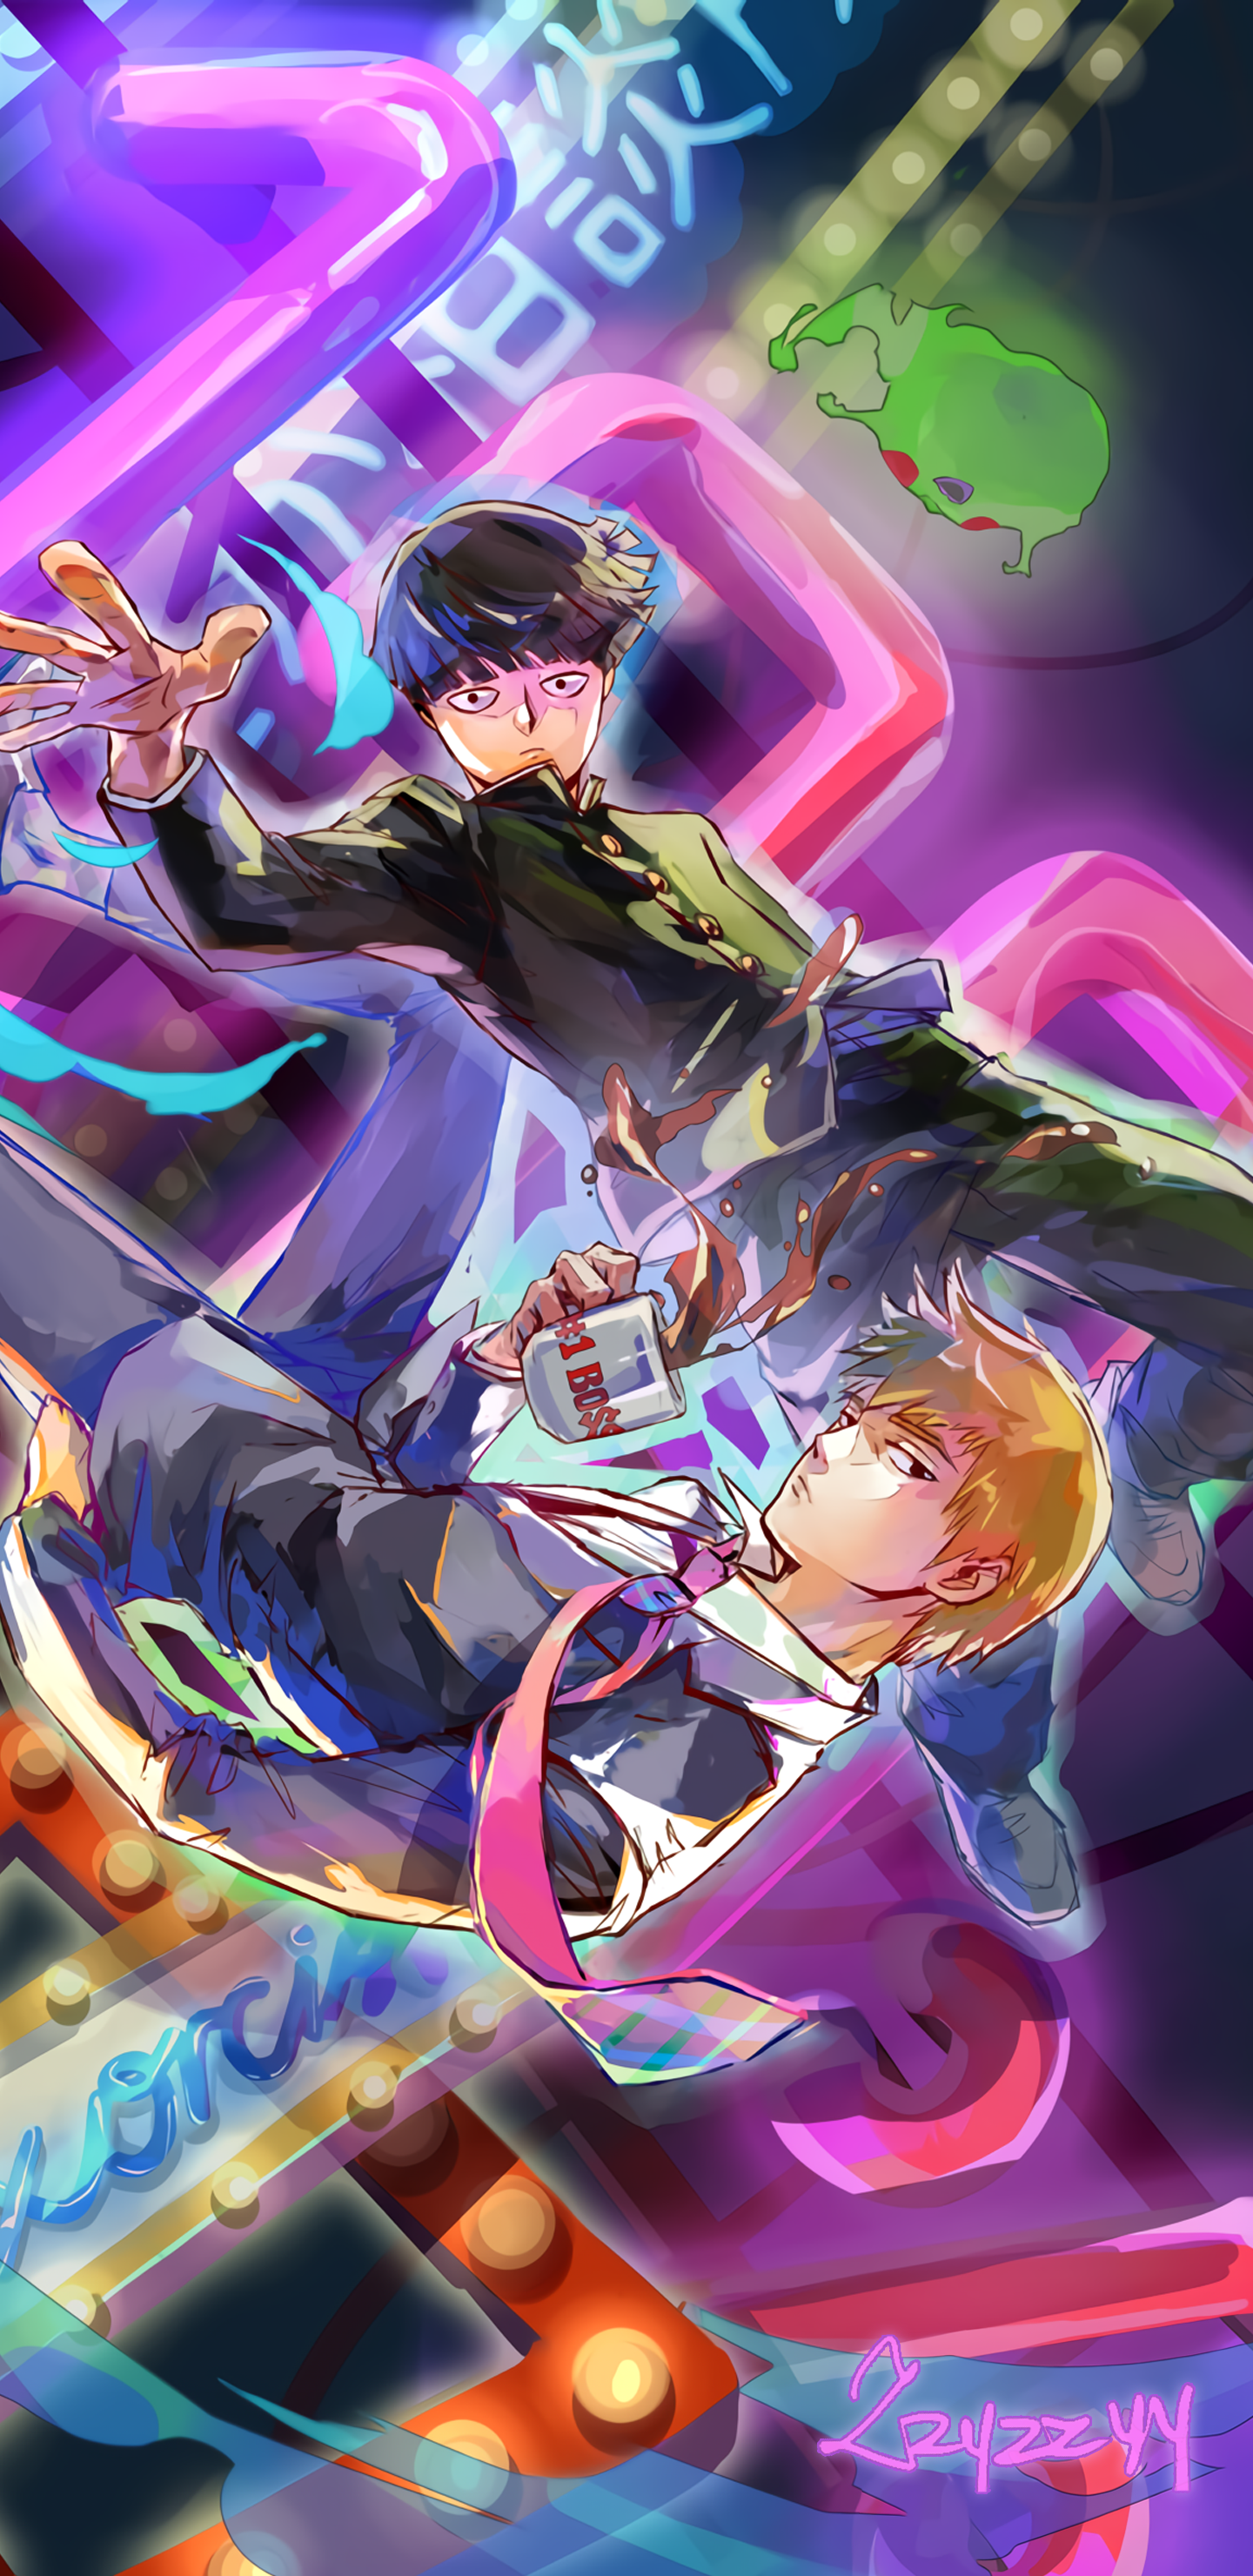 Mob Psycho 100 1440x2960 Wallpapers Art Indieartist Mob Psycho 100 Anime Mob Psycho 100 Wallpaper Mob Psycho 100